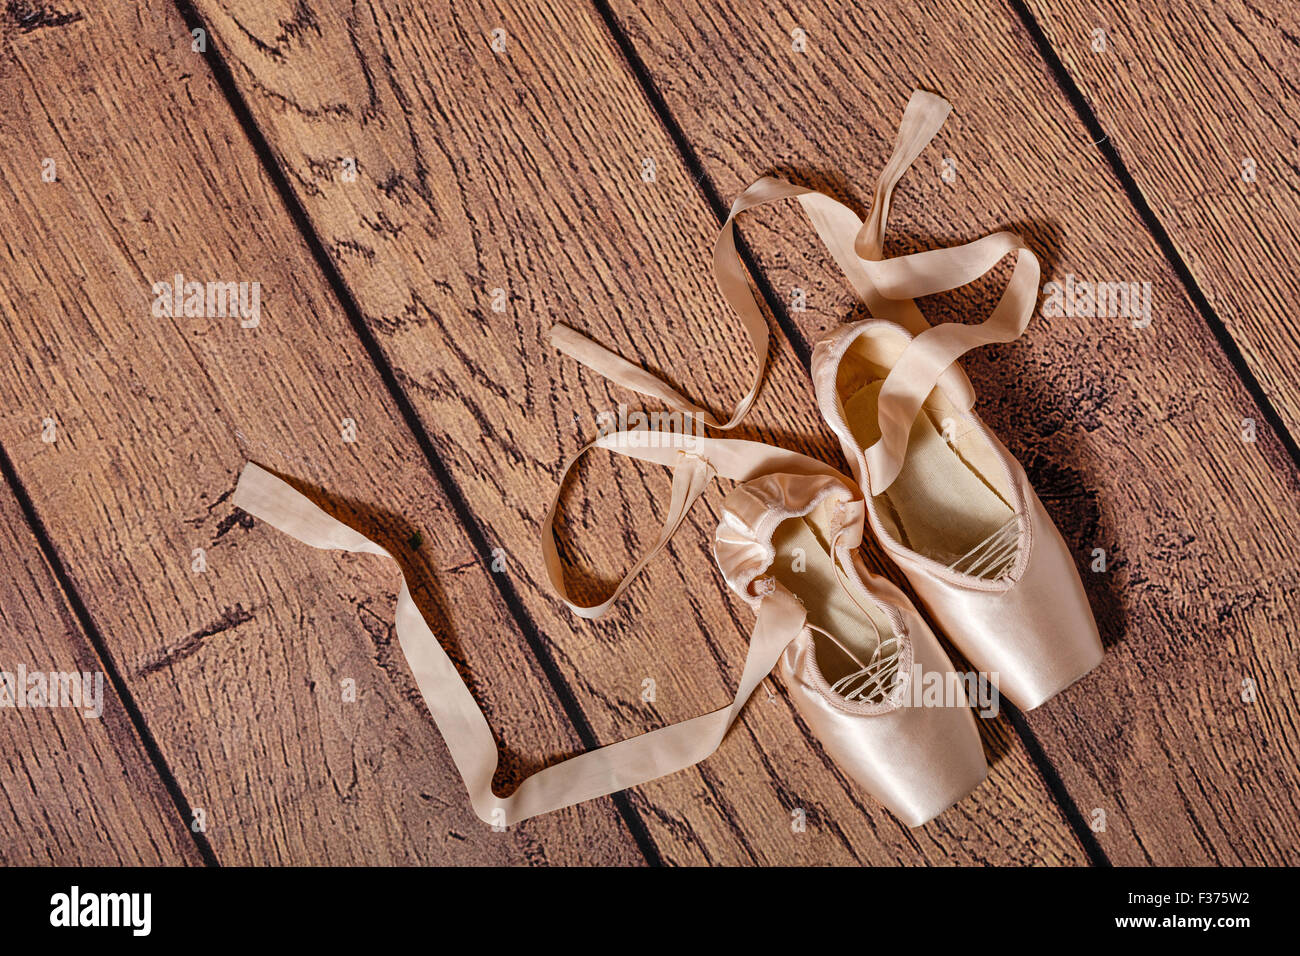 ballet pointe shoes lie on the wooden floor retro the concept of